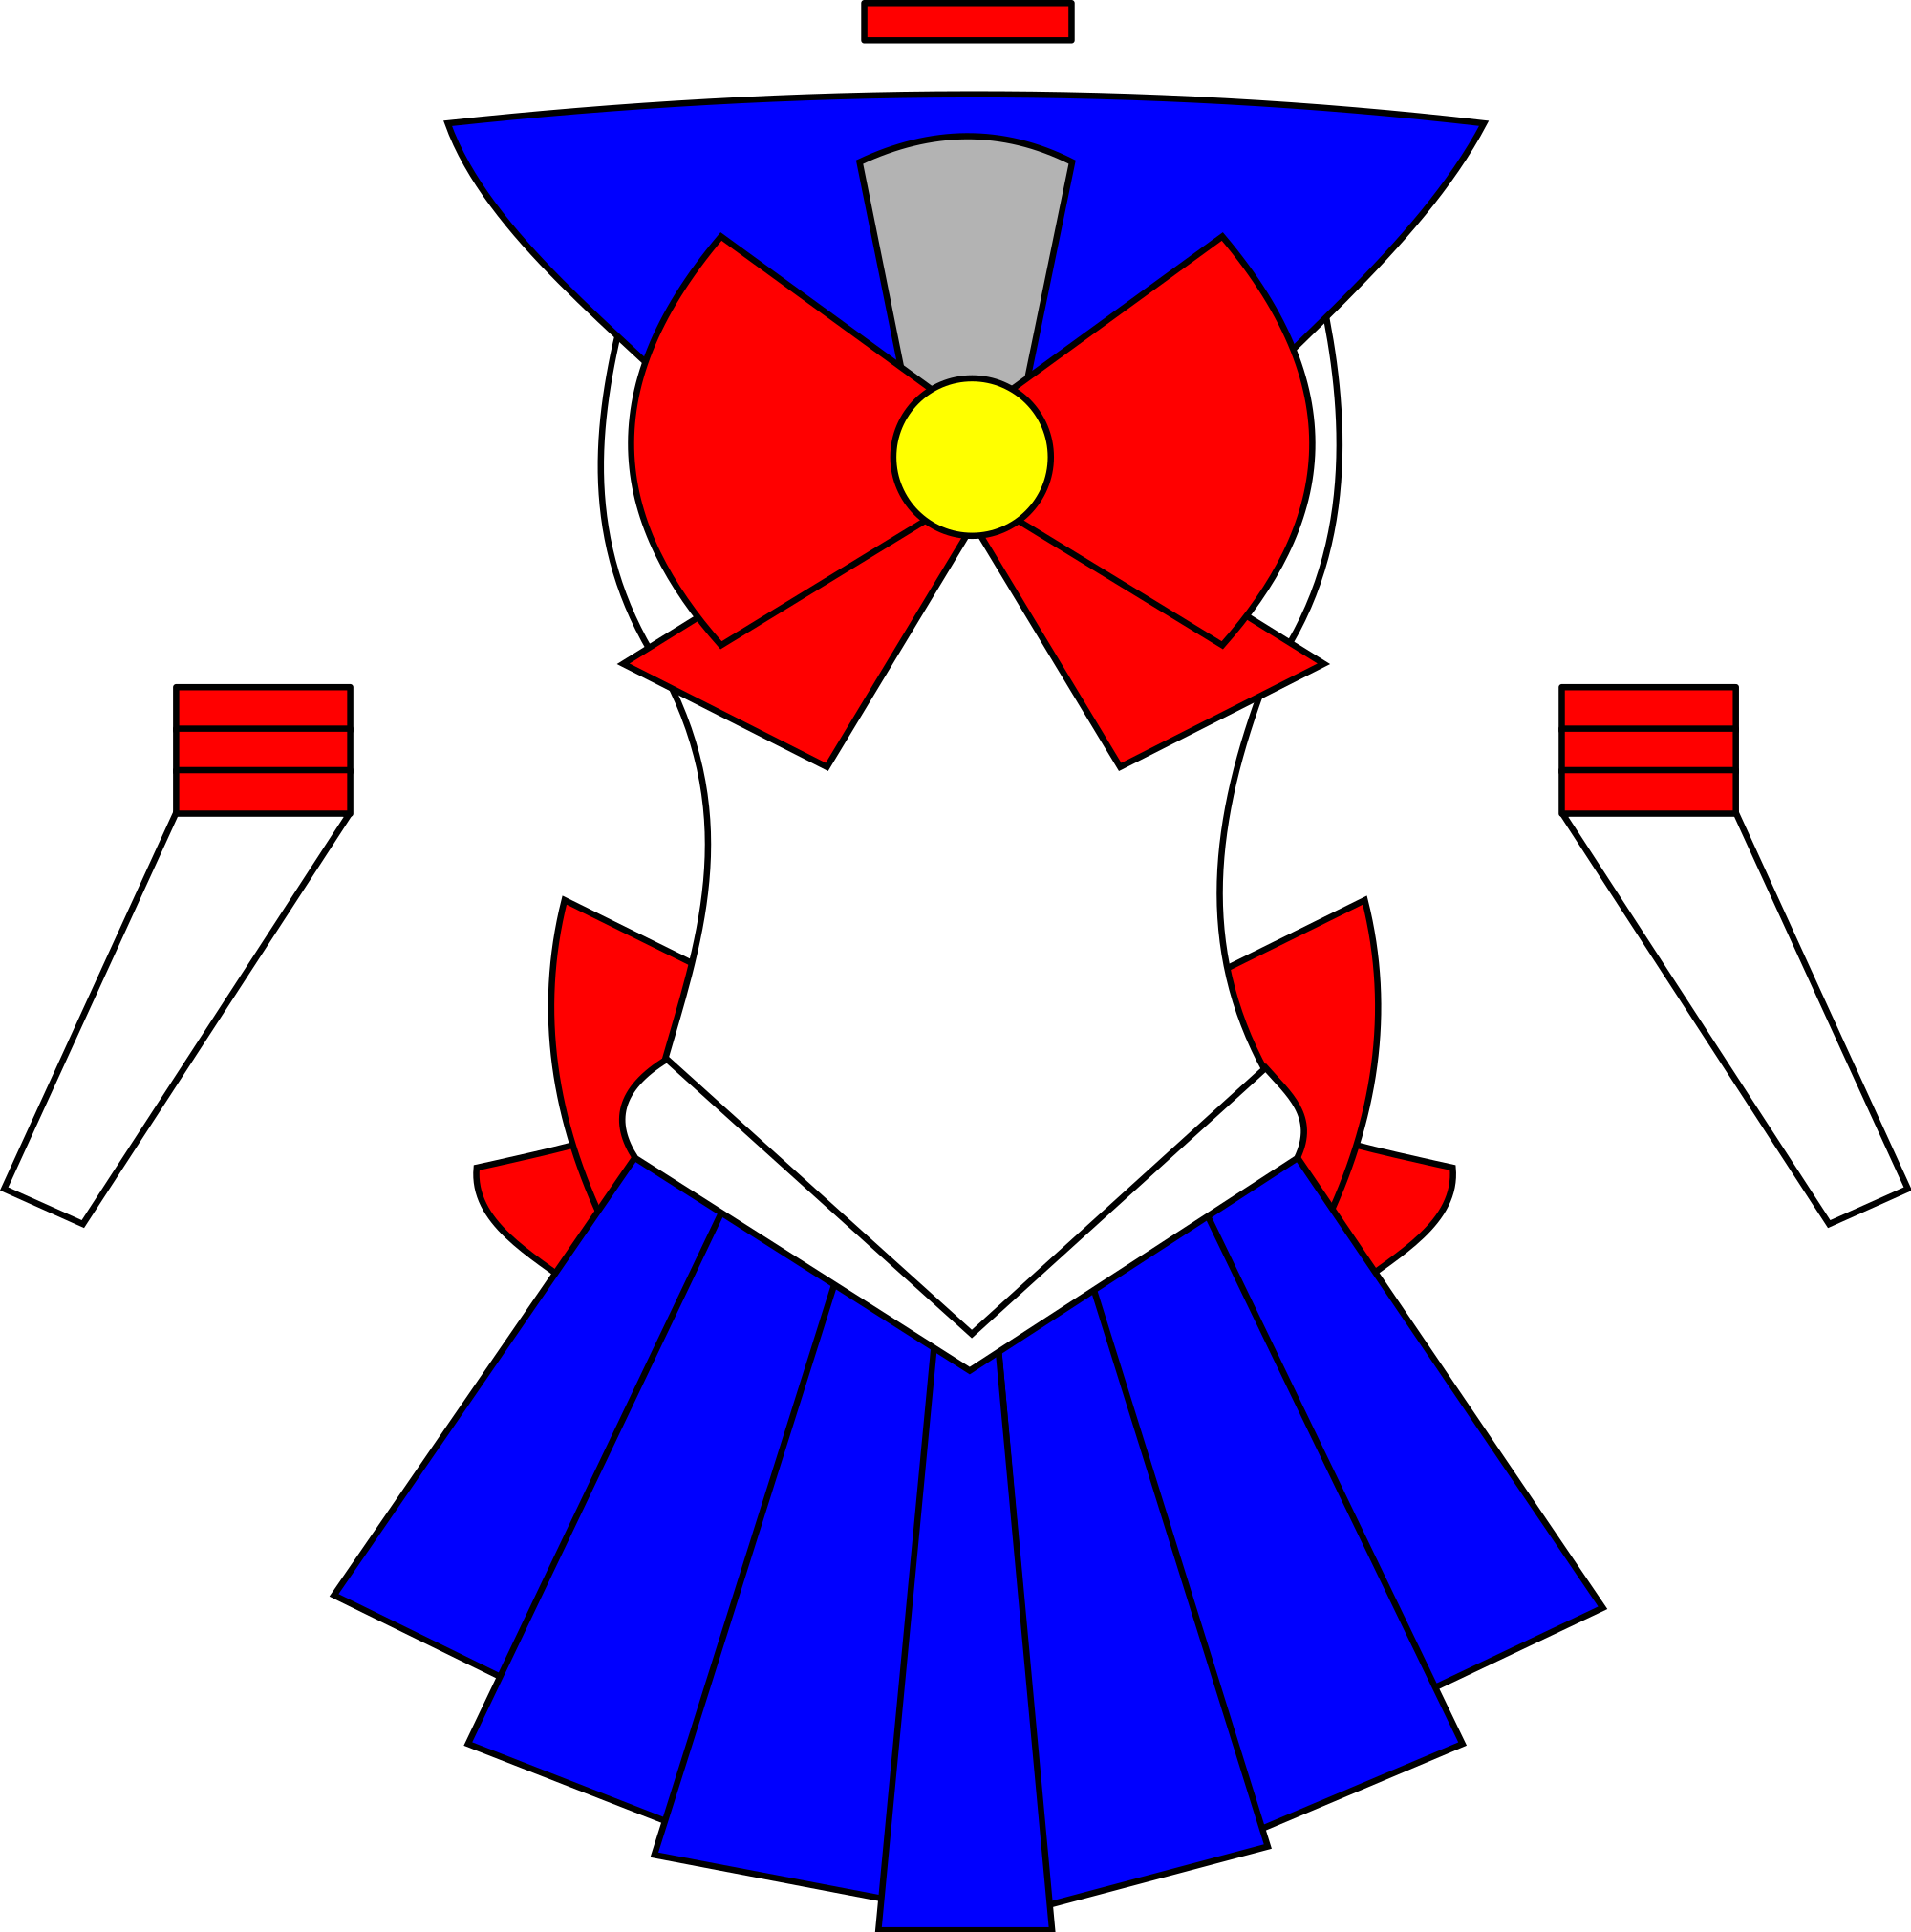 Sailor clipart sailor outfit. File moon svg wikimedia